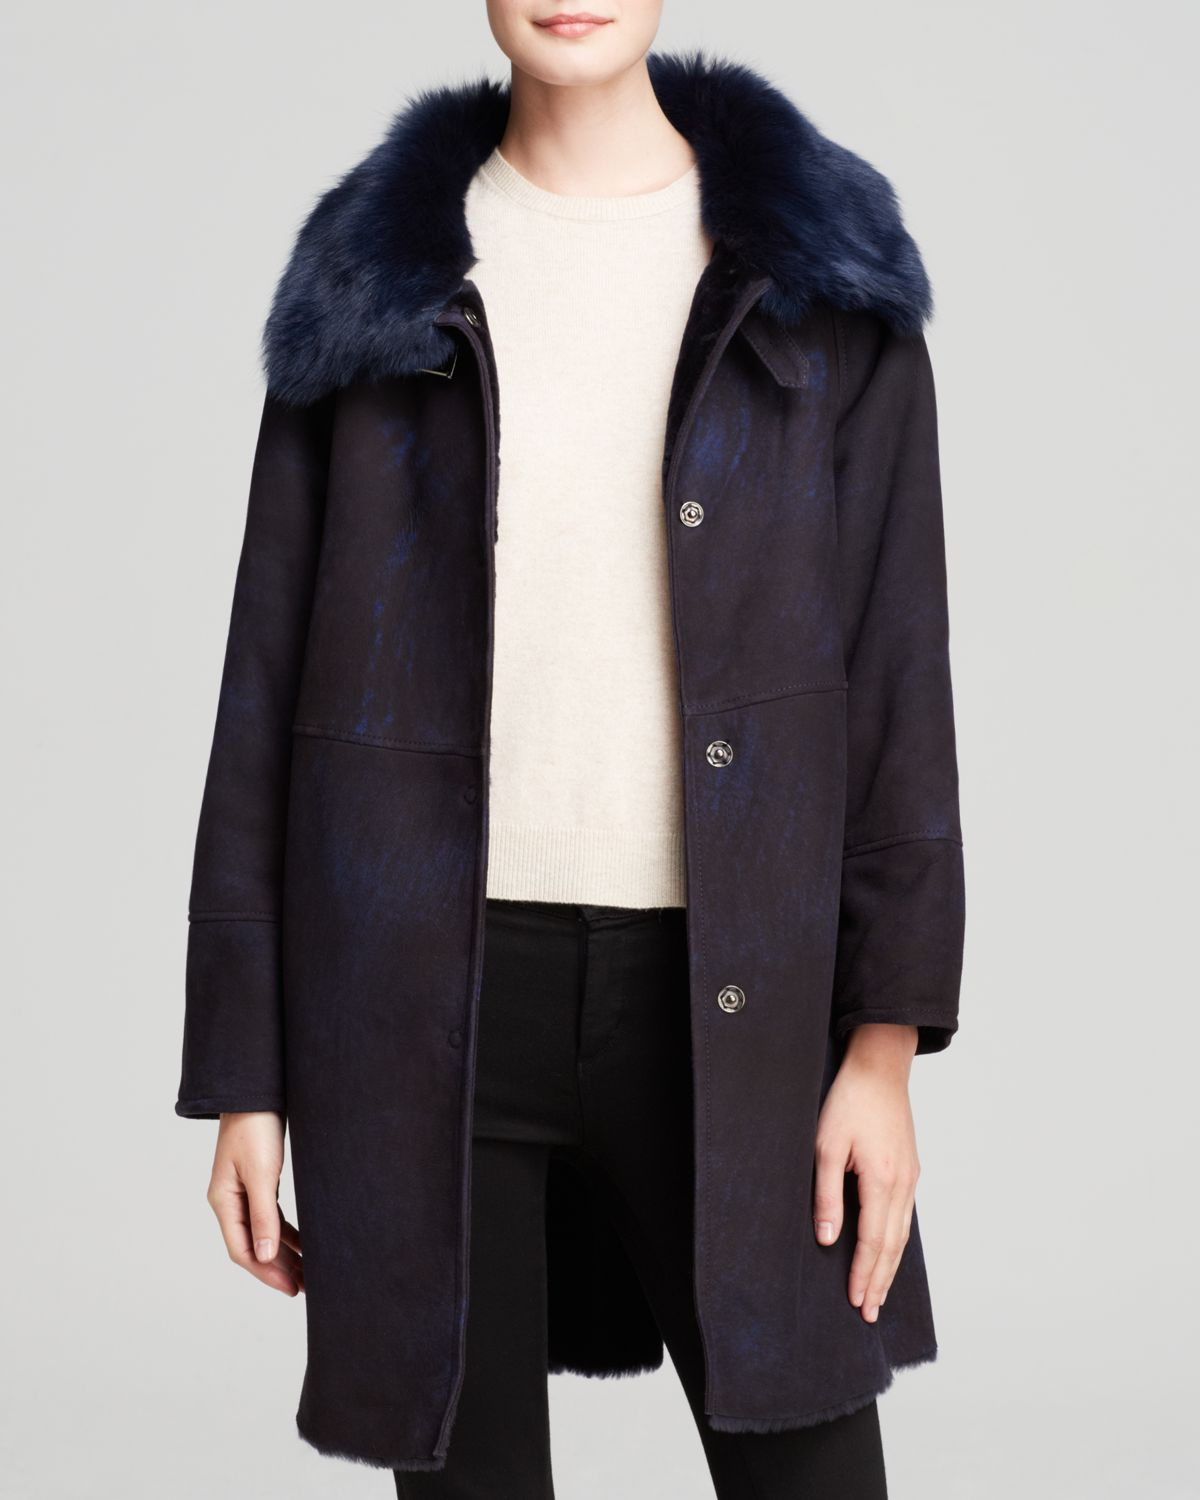 Maximilian Maximilian Shearling Lamb Coat With Toscana Lamb Wing